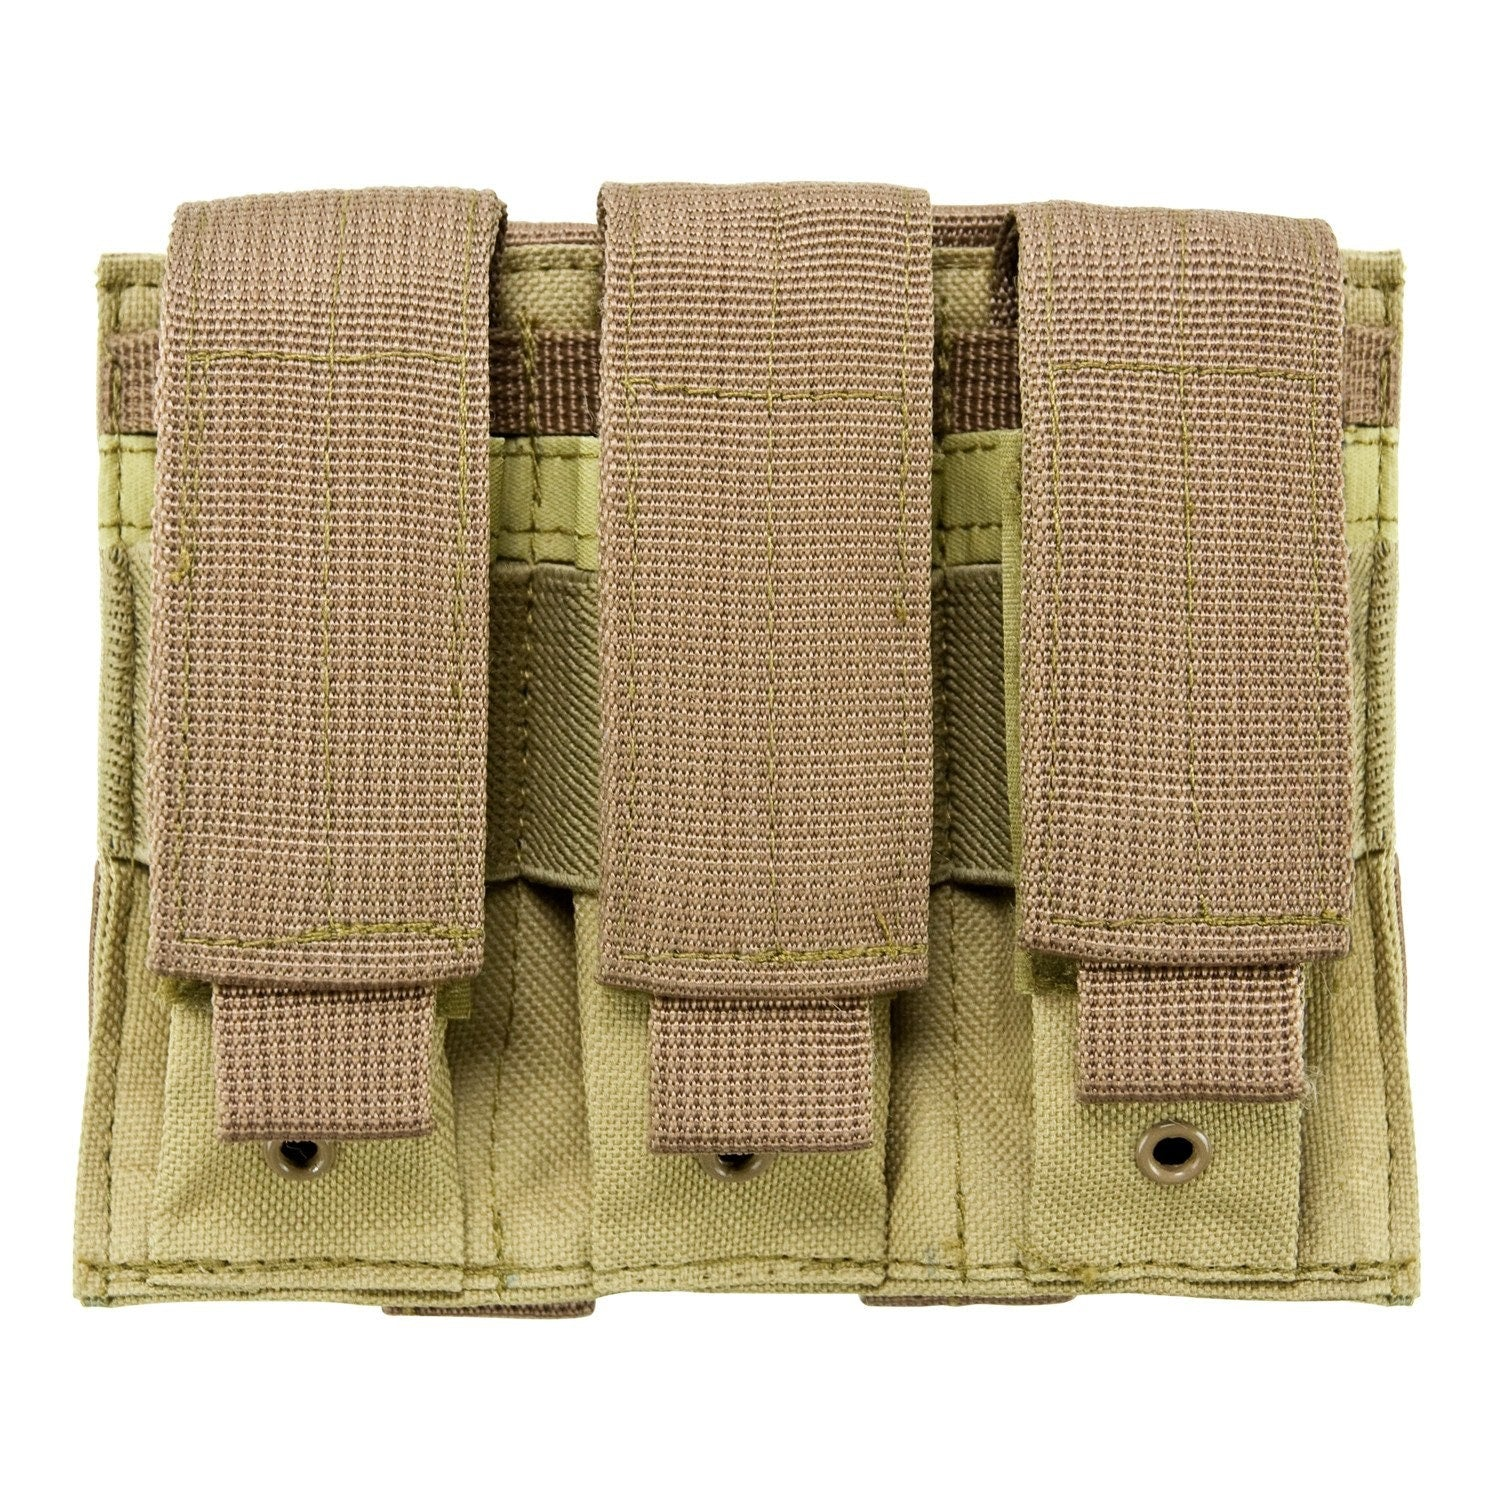 Triple Pistol Mag Pouch - Tan - Molle Pouches And Accessories - Vism - Colonel Mustard